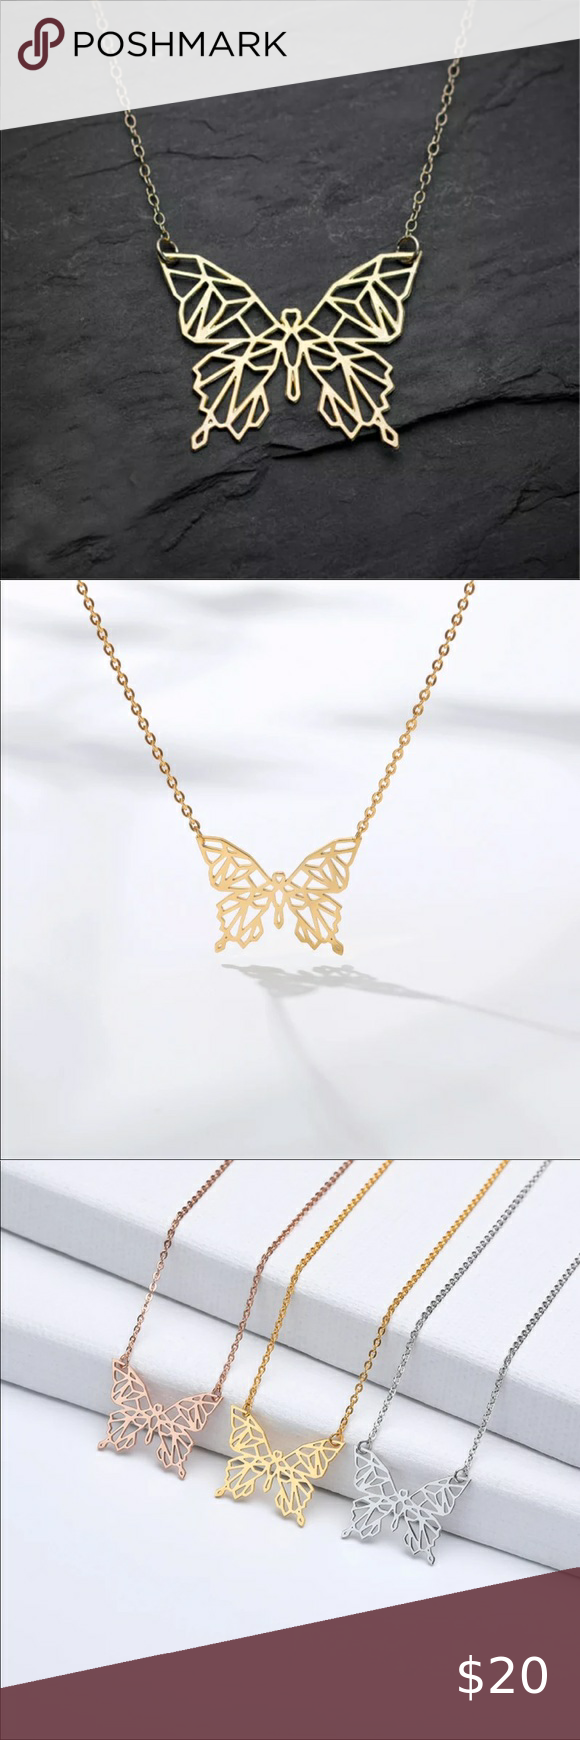 34+ Gold over stainless steel jewelry ideas in 2021